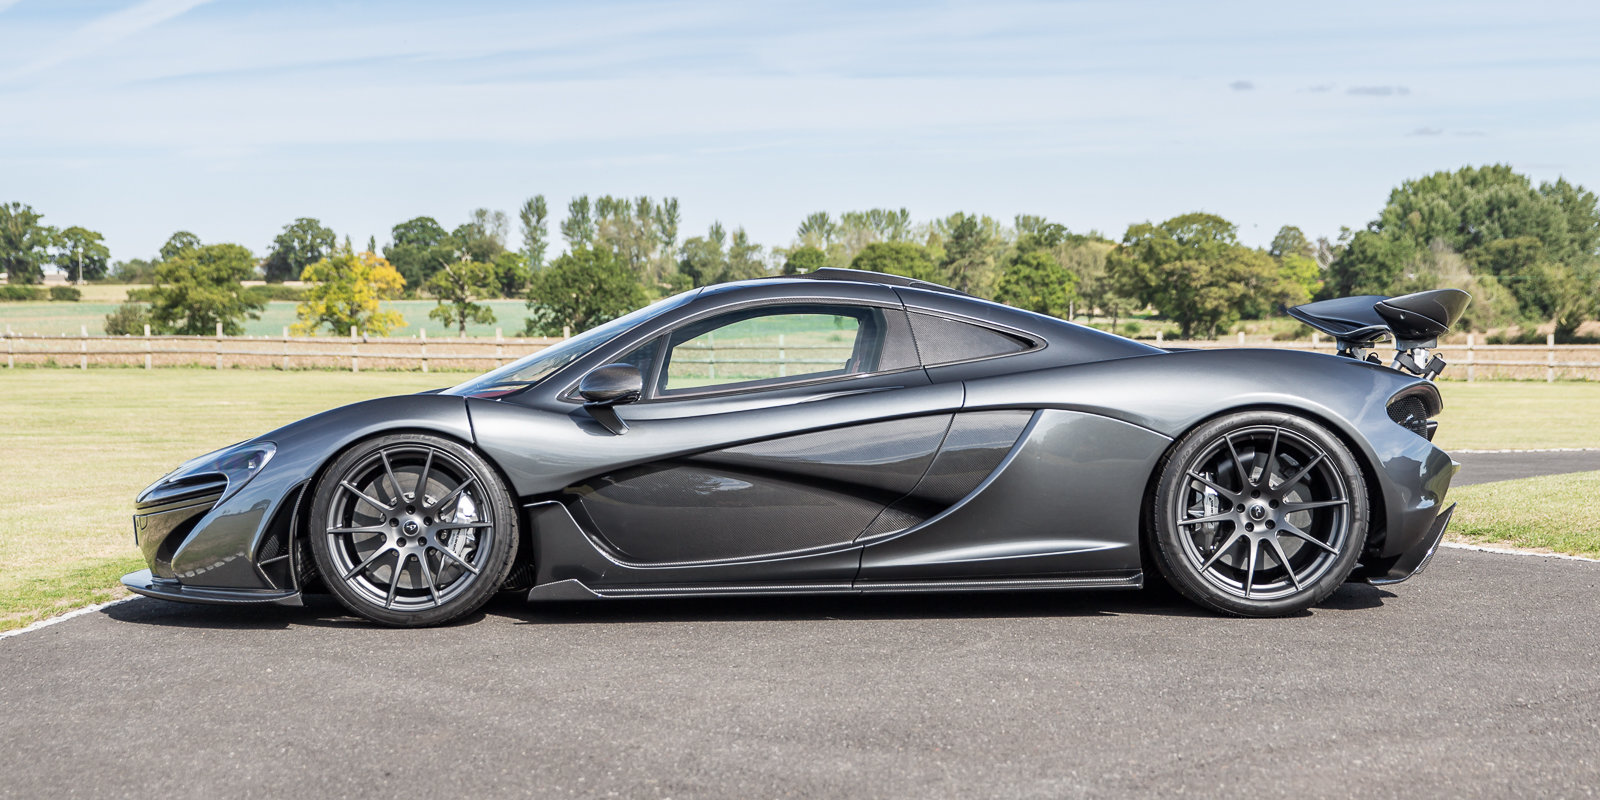 2014 McLaren P1 - UK Supplied, 1 owner & just had major service For Sale (picture 4 of 6)